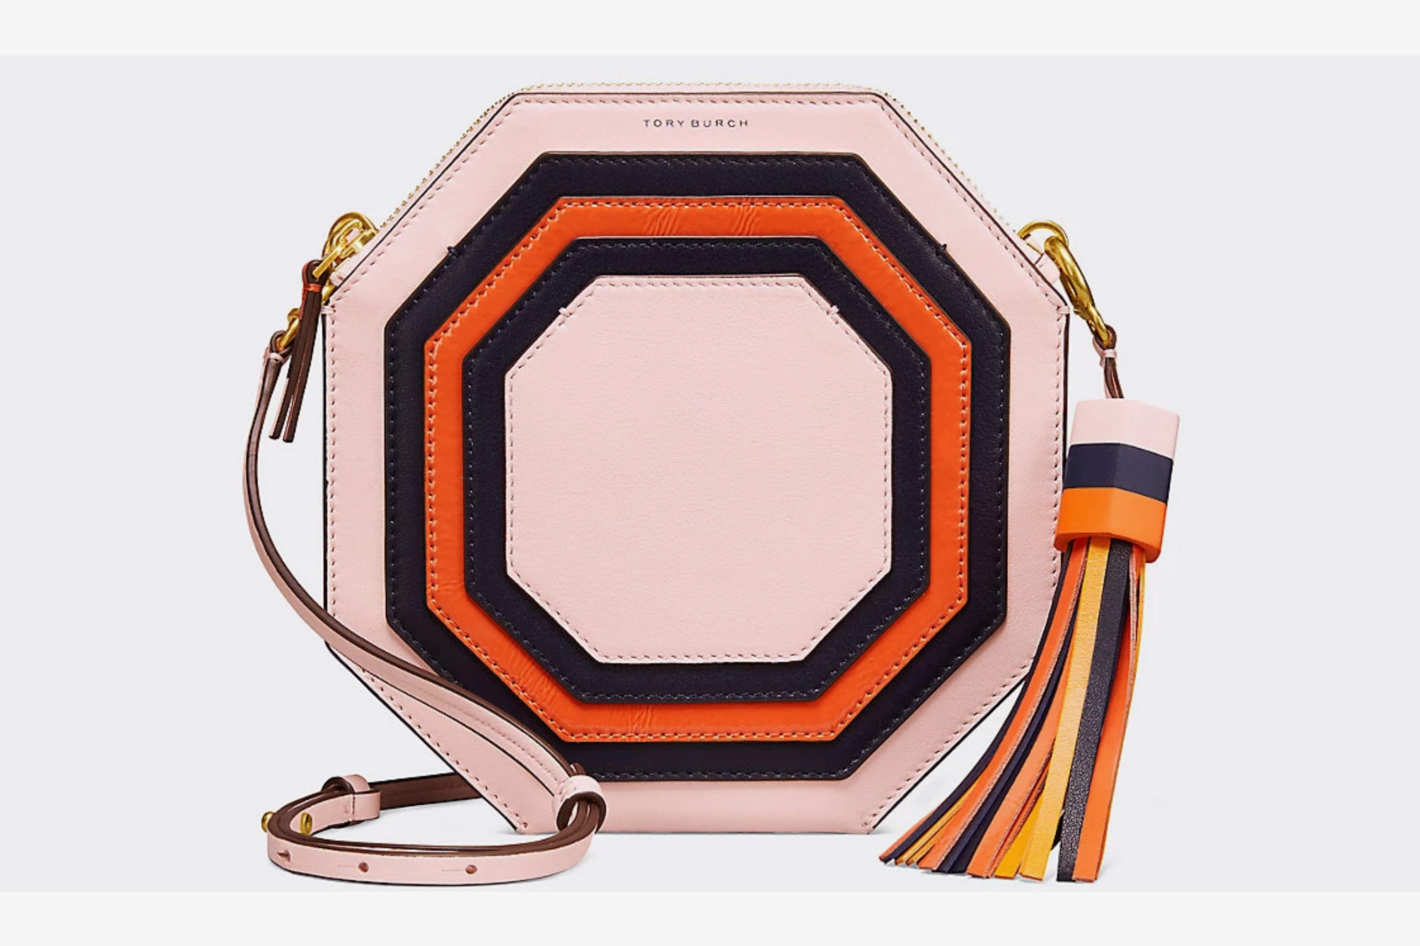 Tory Burch Geo Crossbody Bag